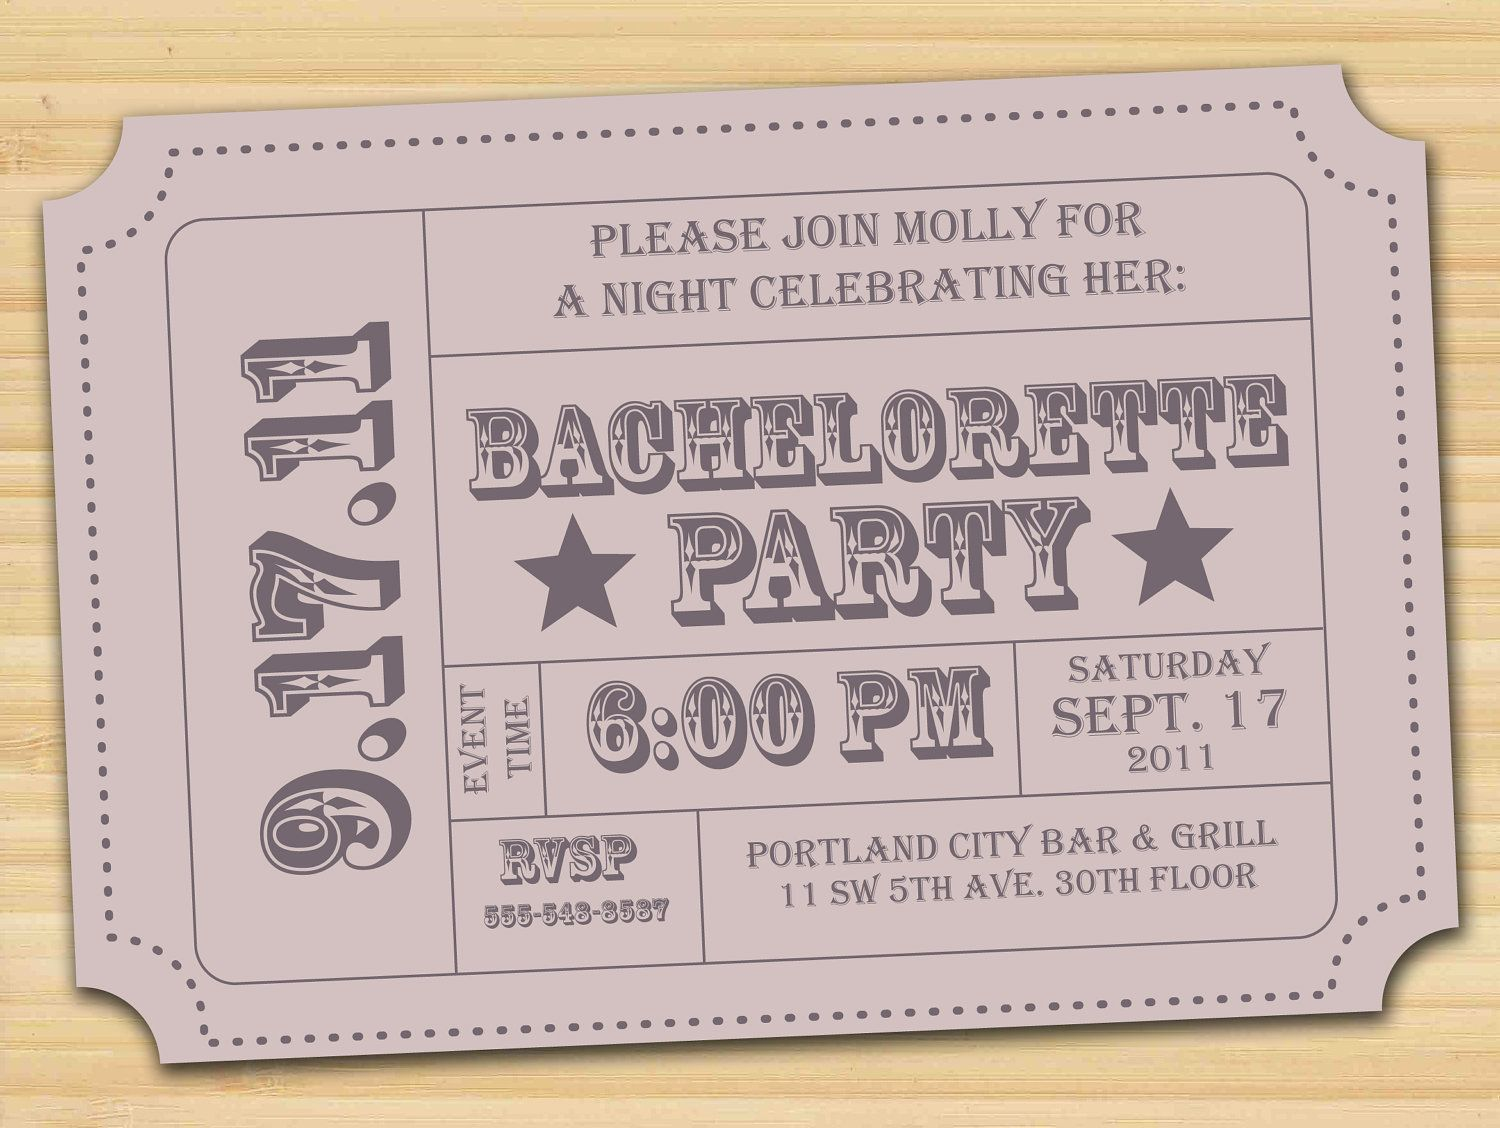 Bachelorette Party Invitation or Announcement Vintage inspired Ticket